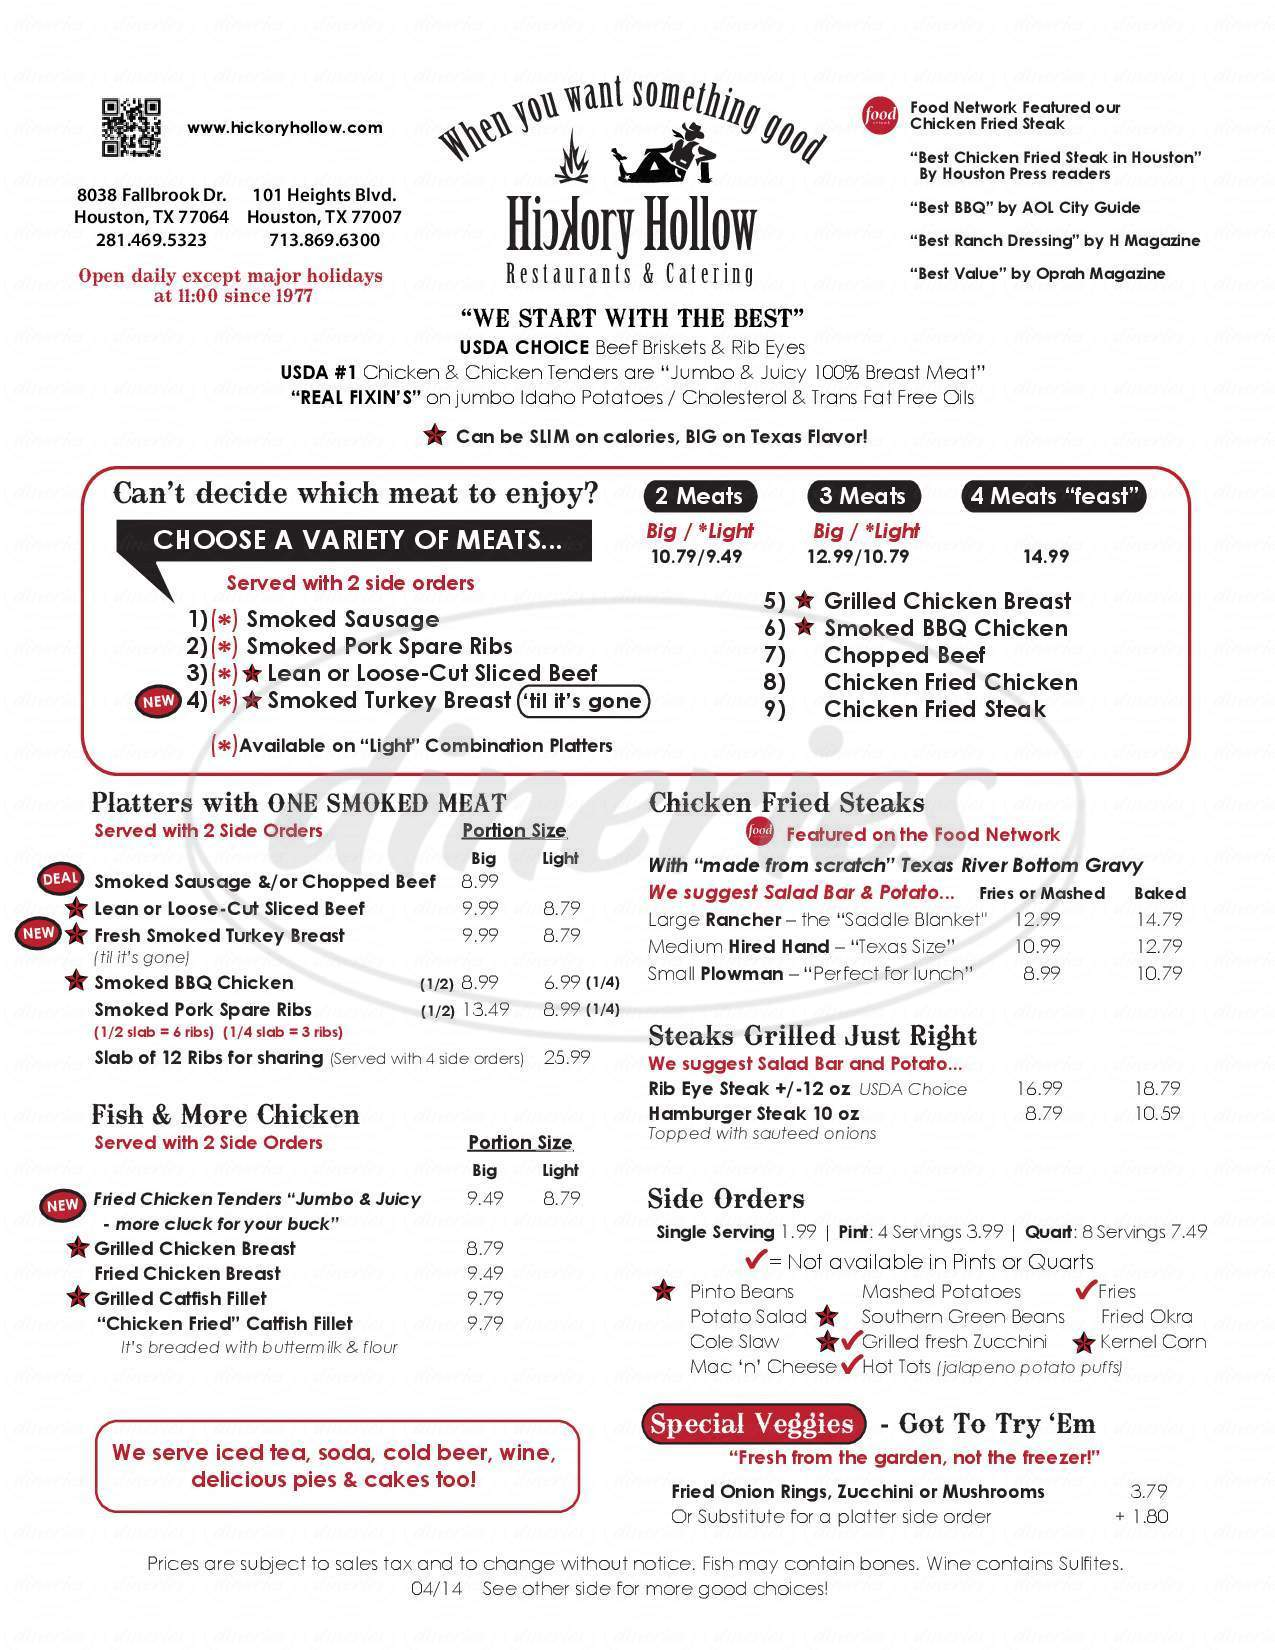 menu for Hickory Hollow Restaurants & Catering